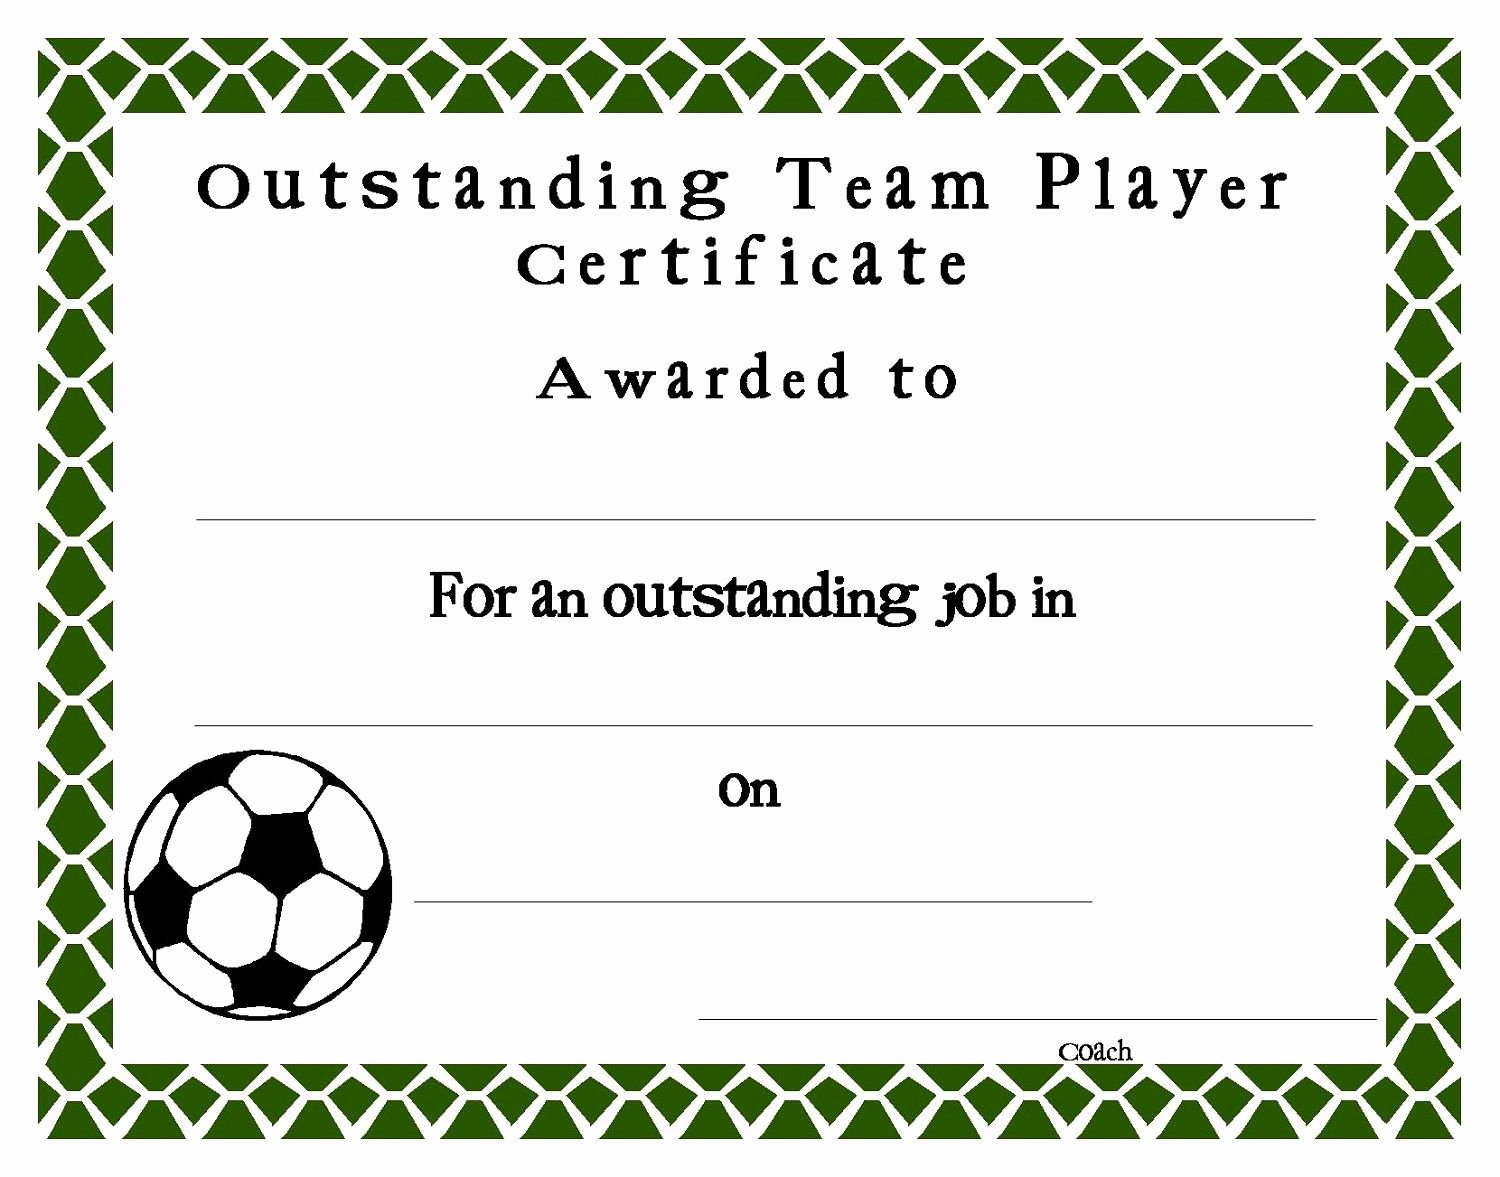 Free soccer Certificate Templates Awesome soccer Certificate Templates Blank